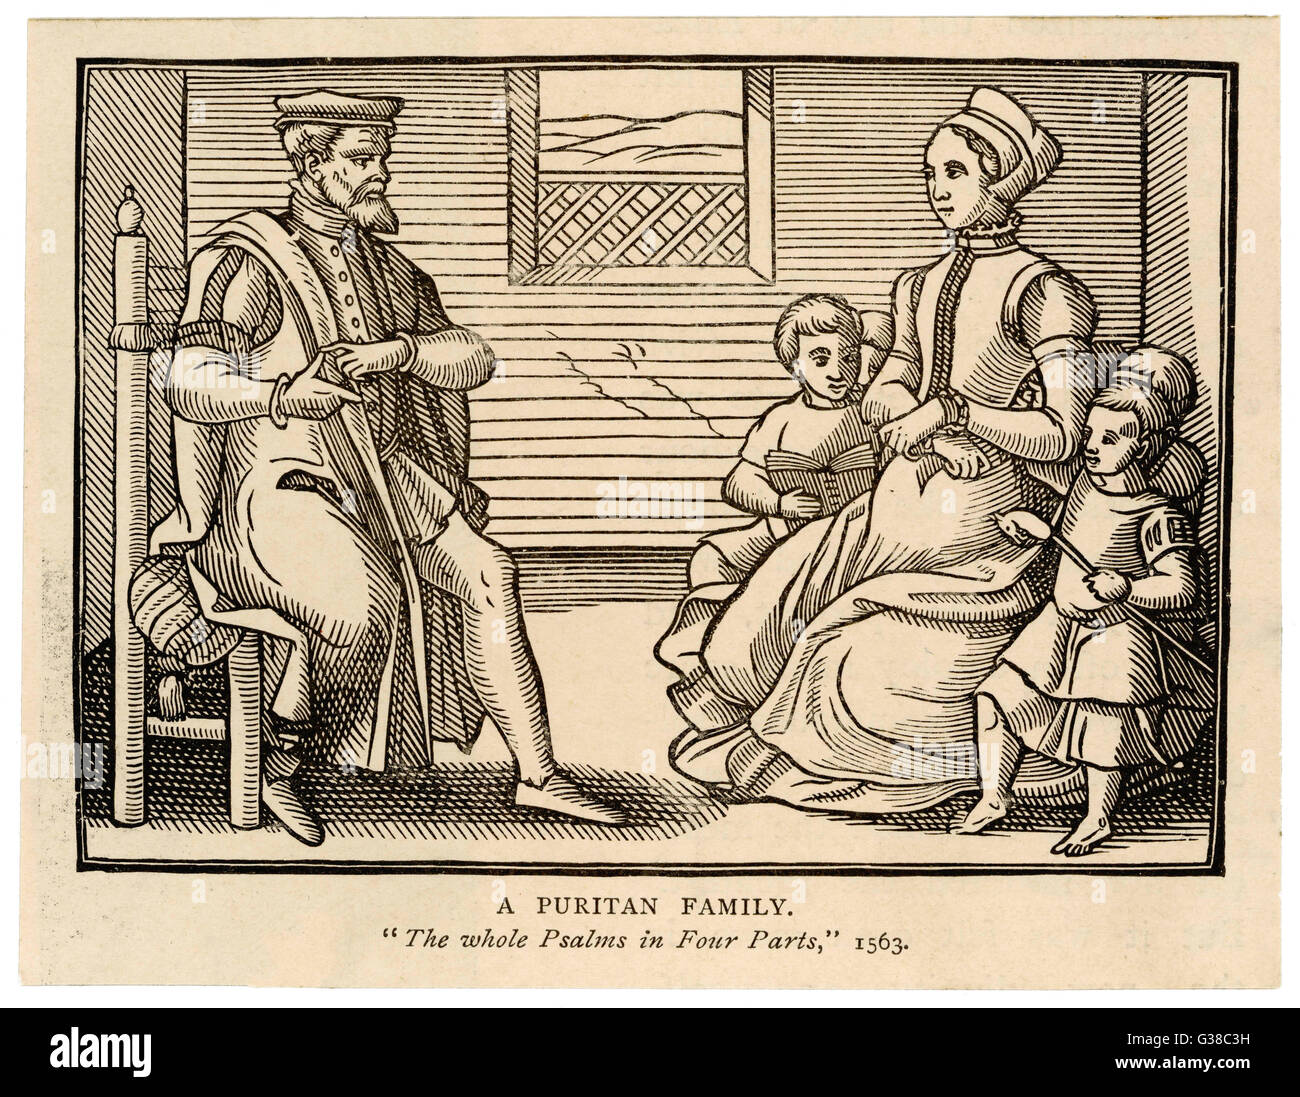 A Puritan family - father sits separately, while his pregnant  wife sits with their 4  children nestled around her. - Stock Image